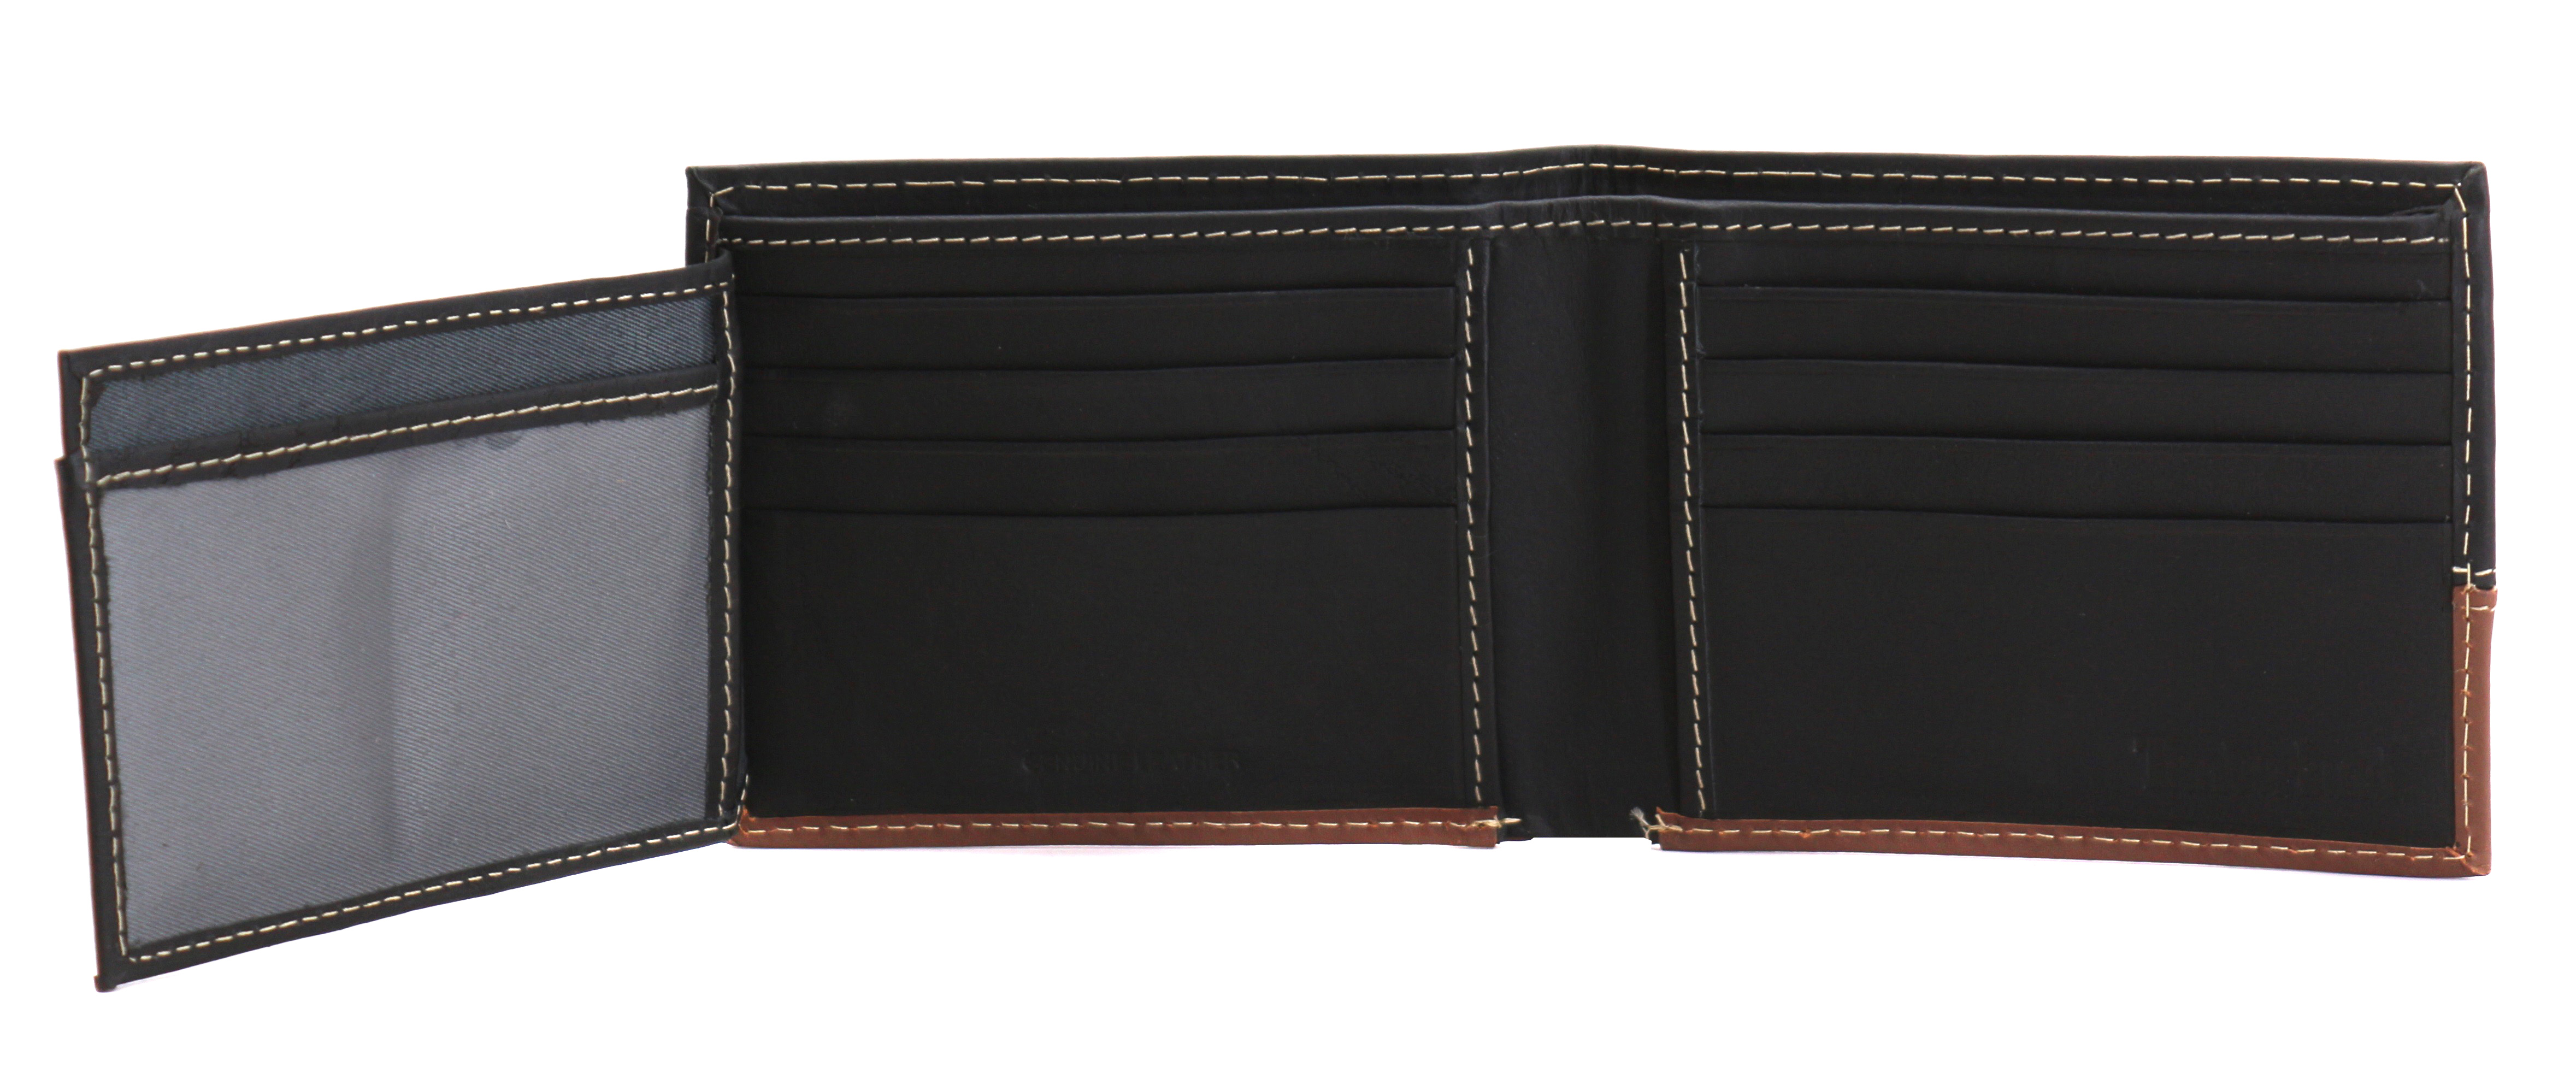 Timberland-Men-039-s-Genuine-Two-Tone-Leather-Credit-Card-Billfold-Commuter-Wallet thumbnail 14